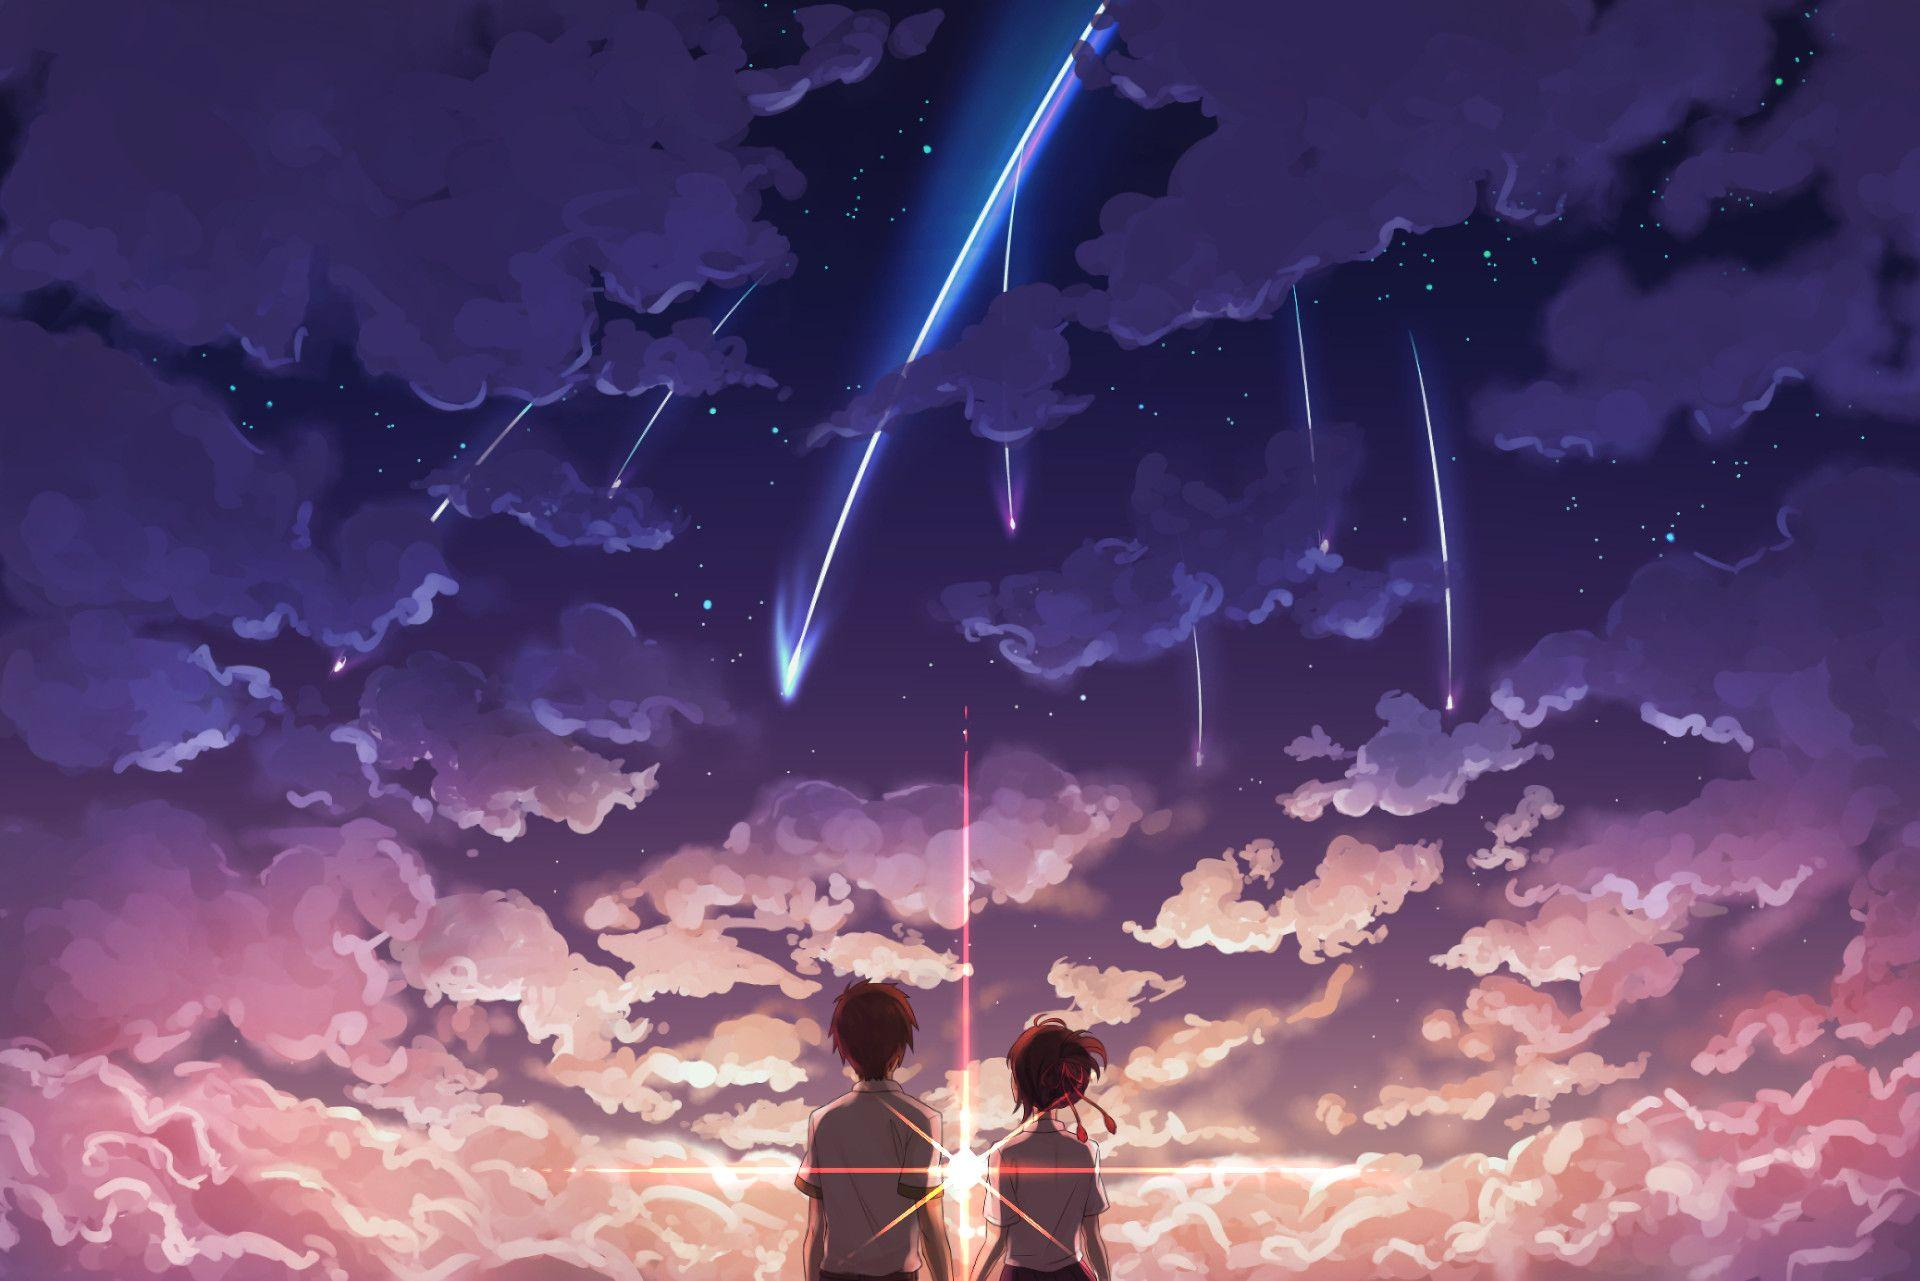 Your Name Anime Desktop Wallpapers Wallpaper Cave